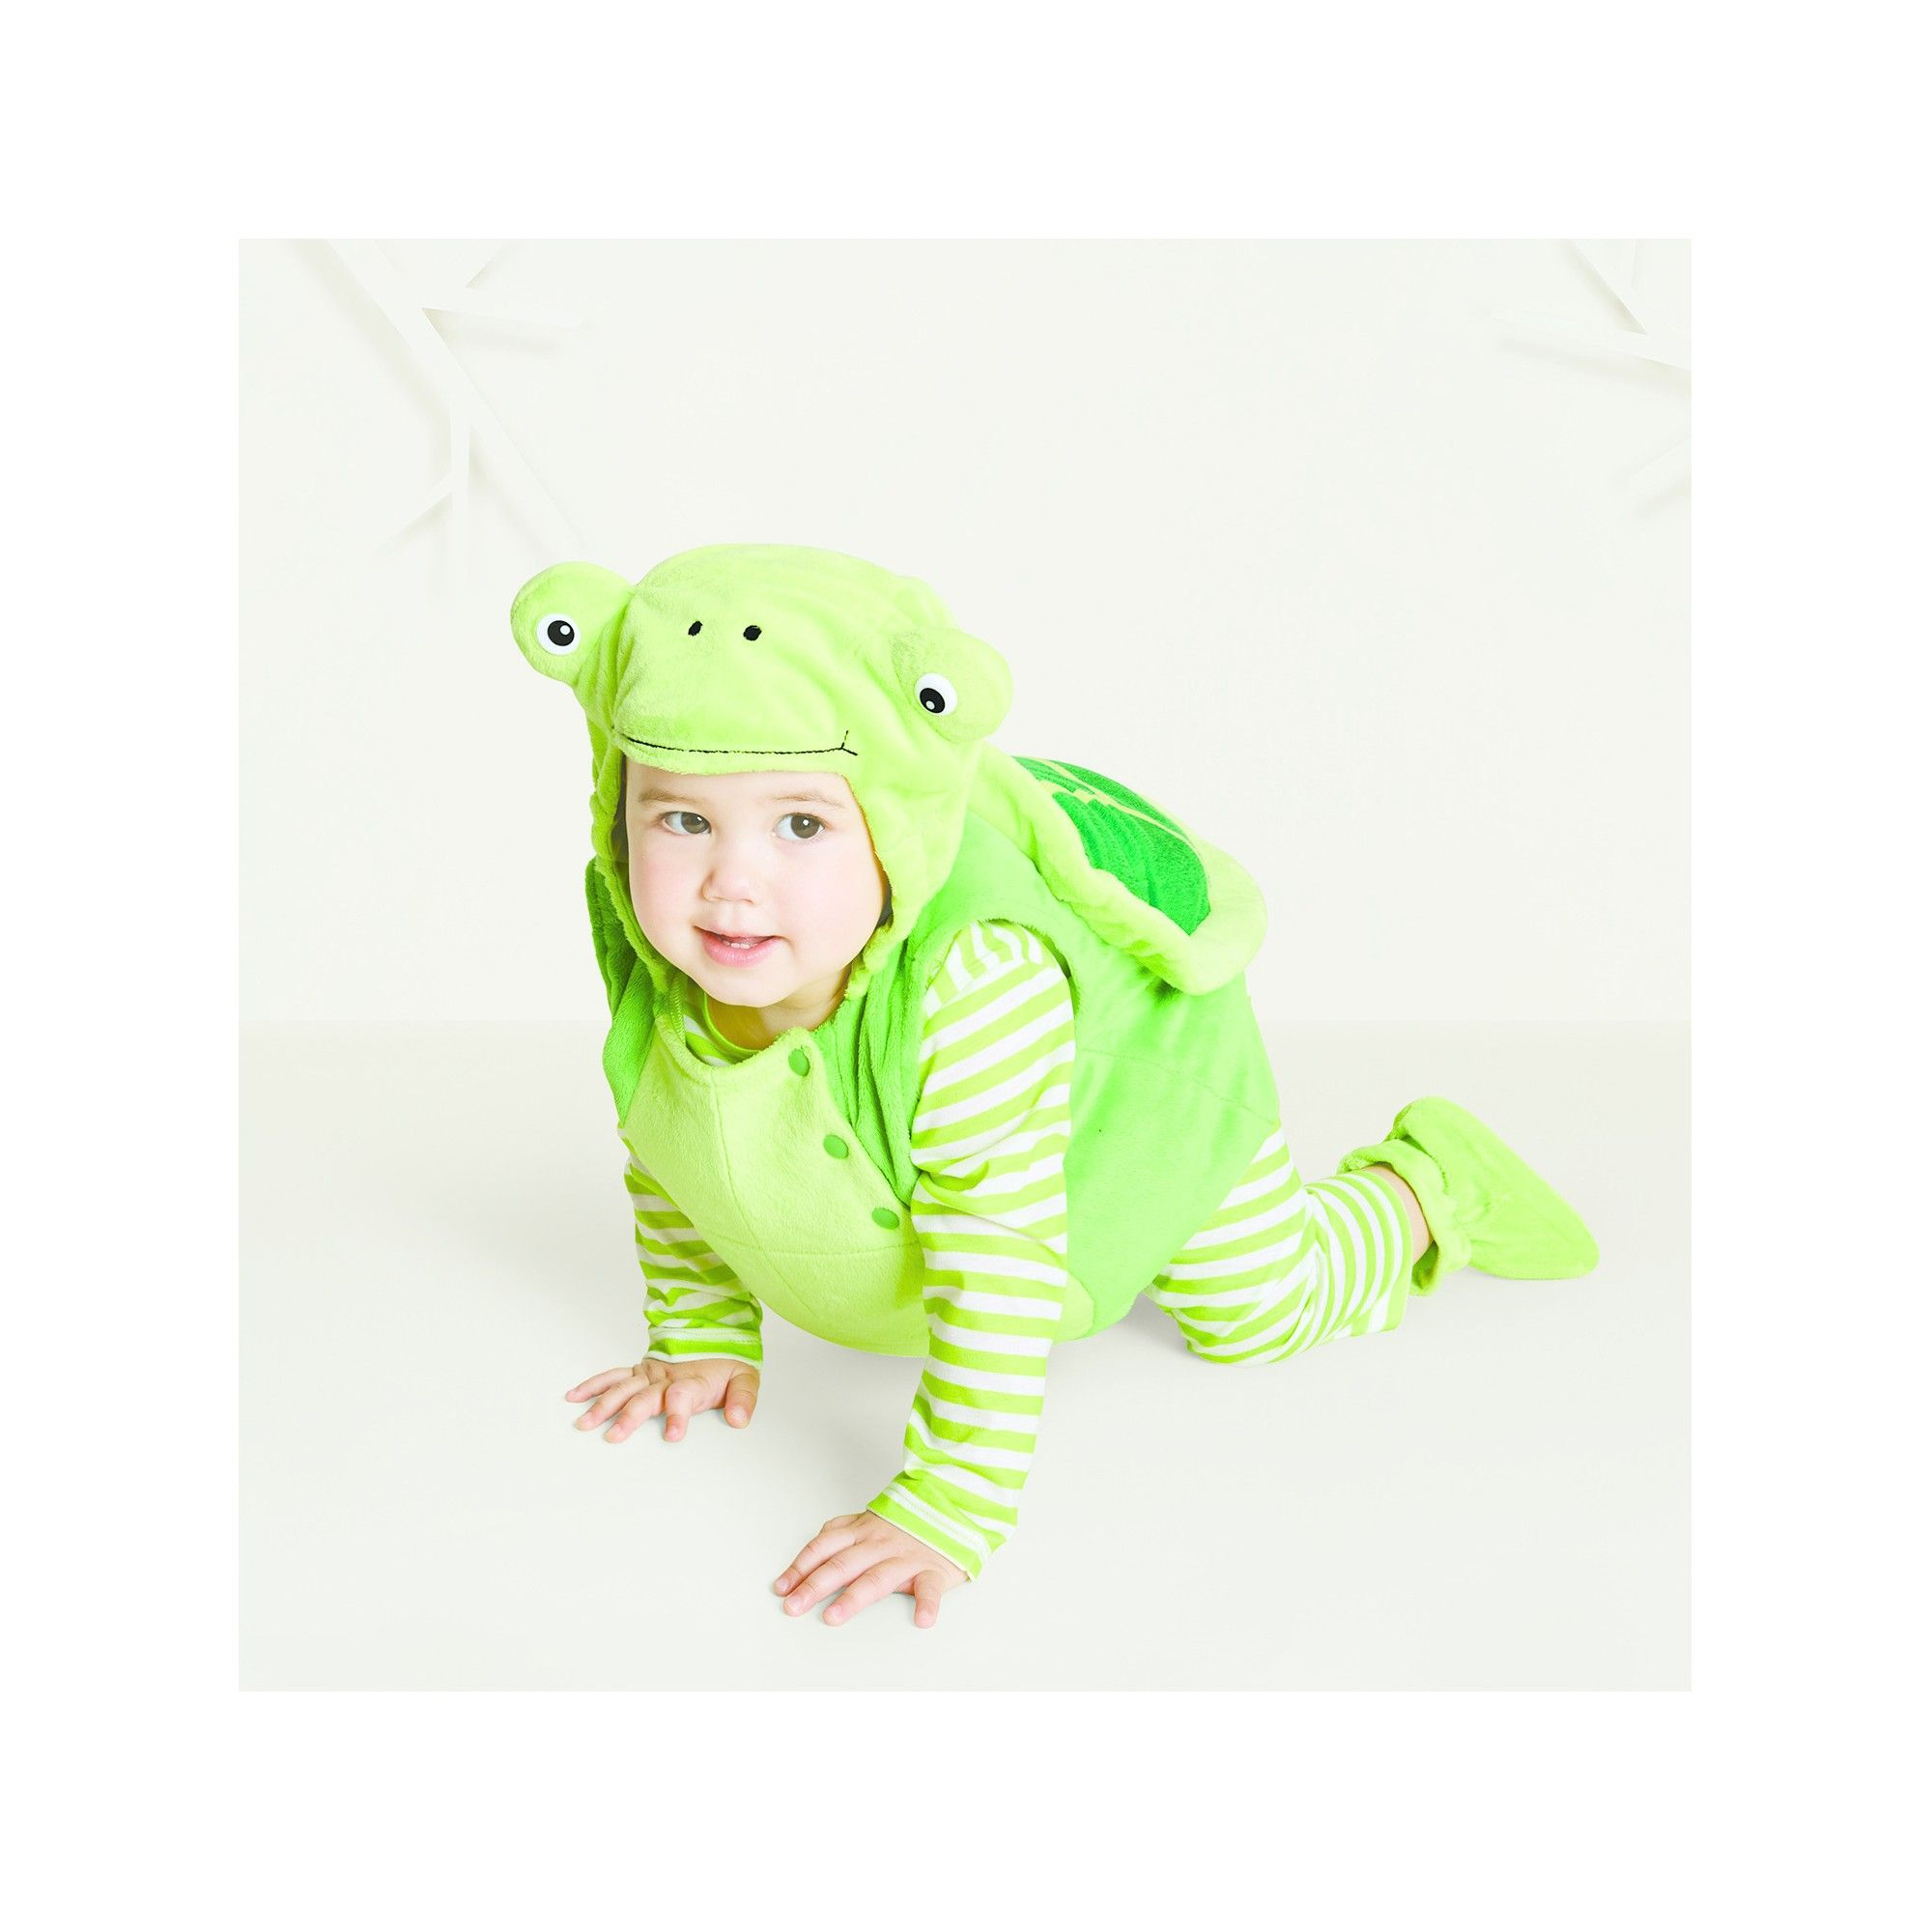 5b61be2a9 Halloween Baby Plush Turtle Vest Costume - 12-18 Months - Hyde and Eek!  Boutique, Infant Unisex, Green